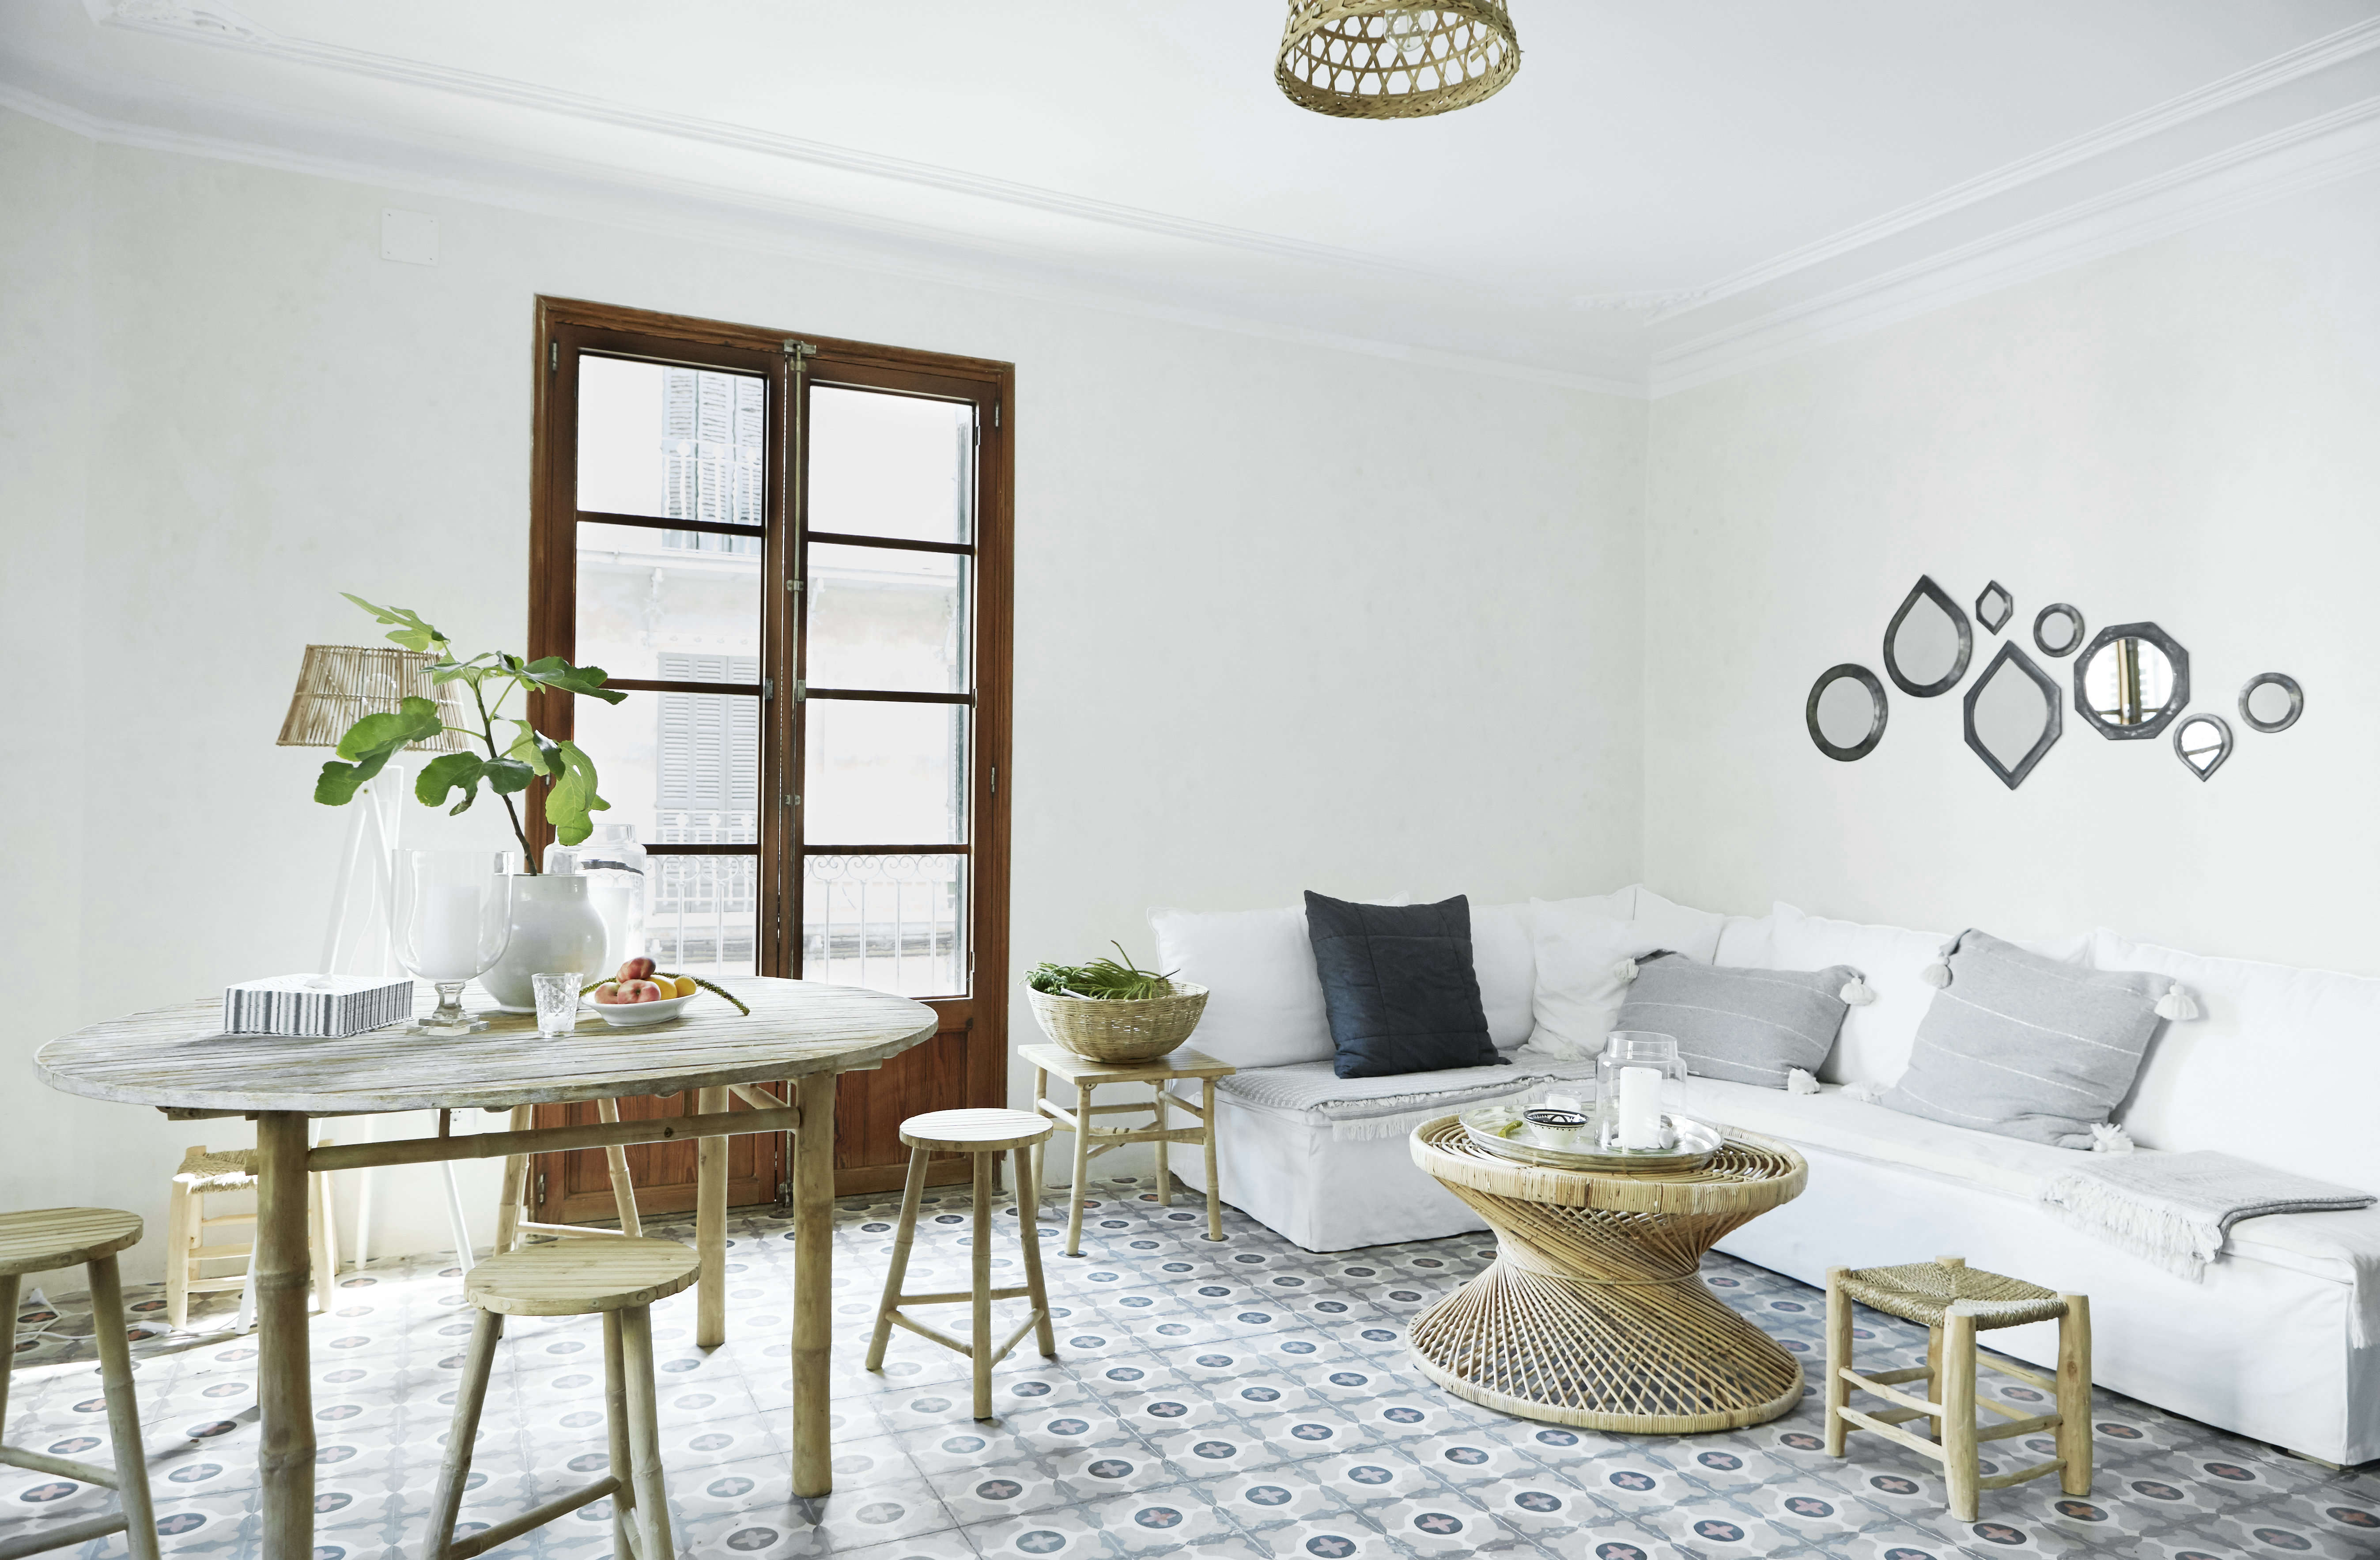 Heres how to replicate the look at home with many of the sources coming directly from tine k herself